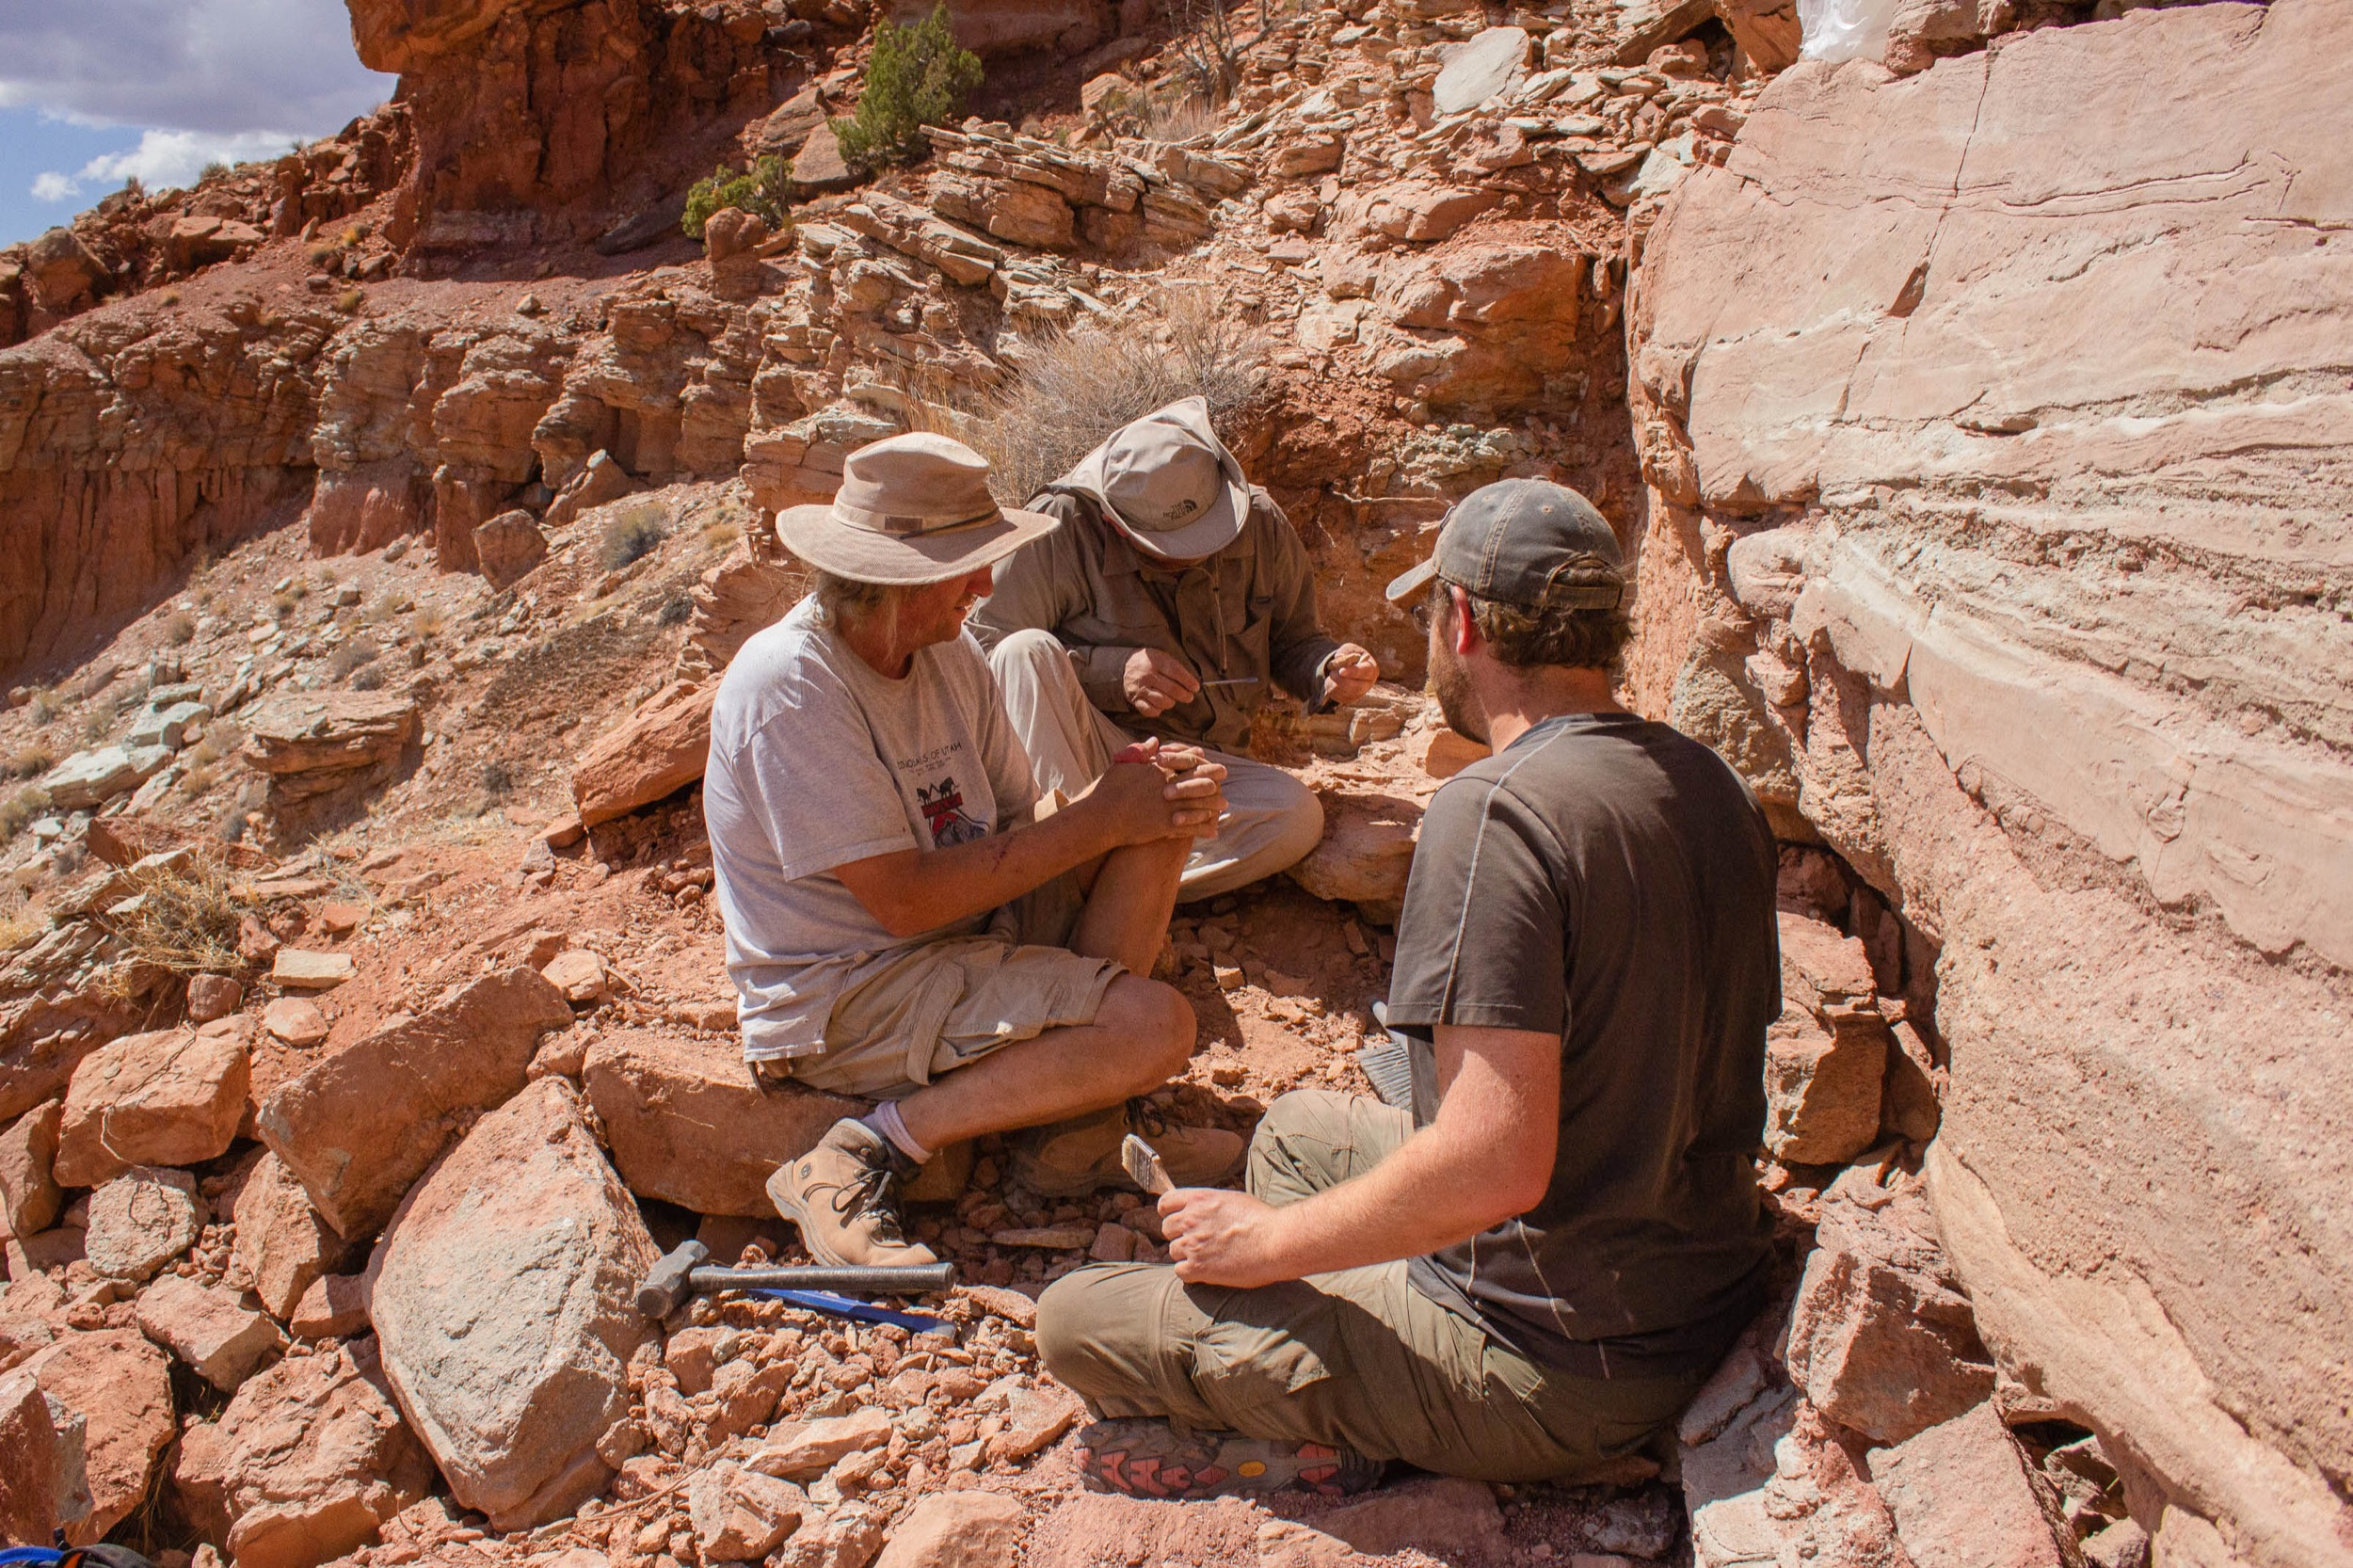 three men huddle around a piece of rock with hand tools, excavating a fossil out in the desert